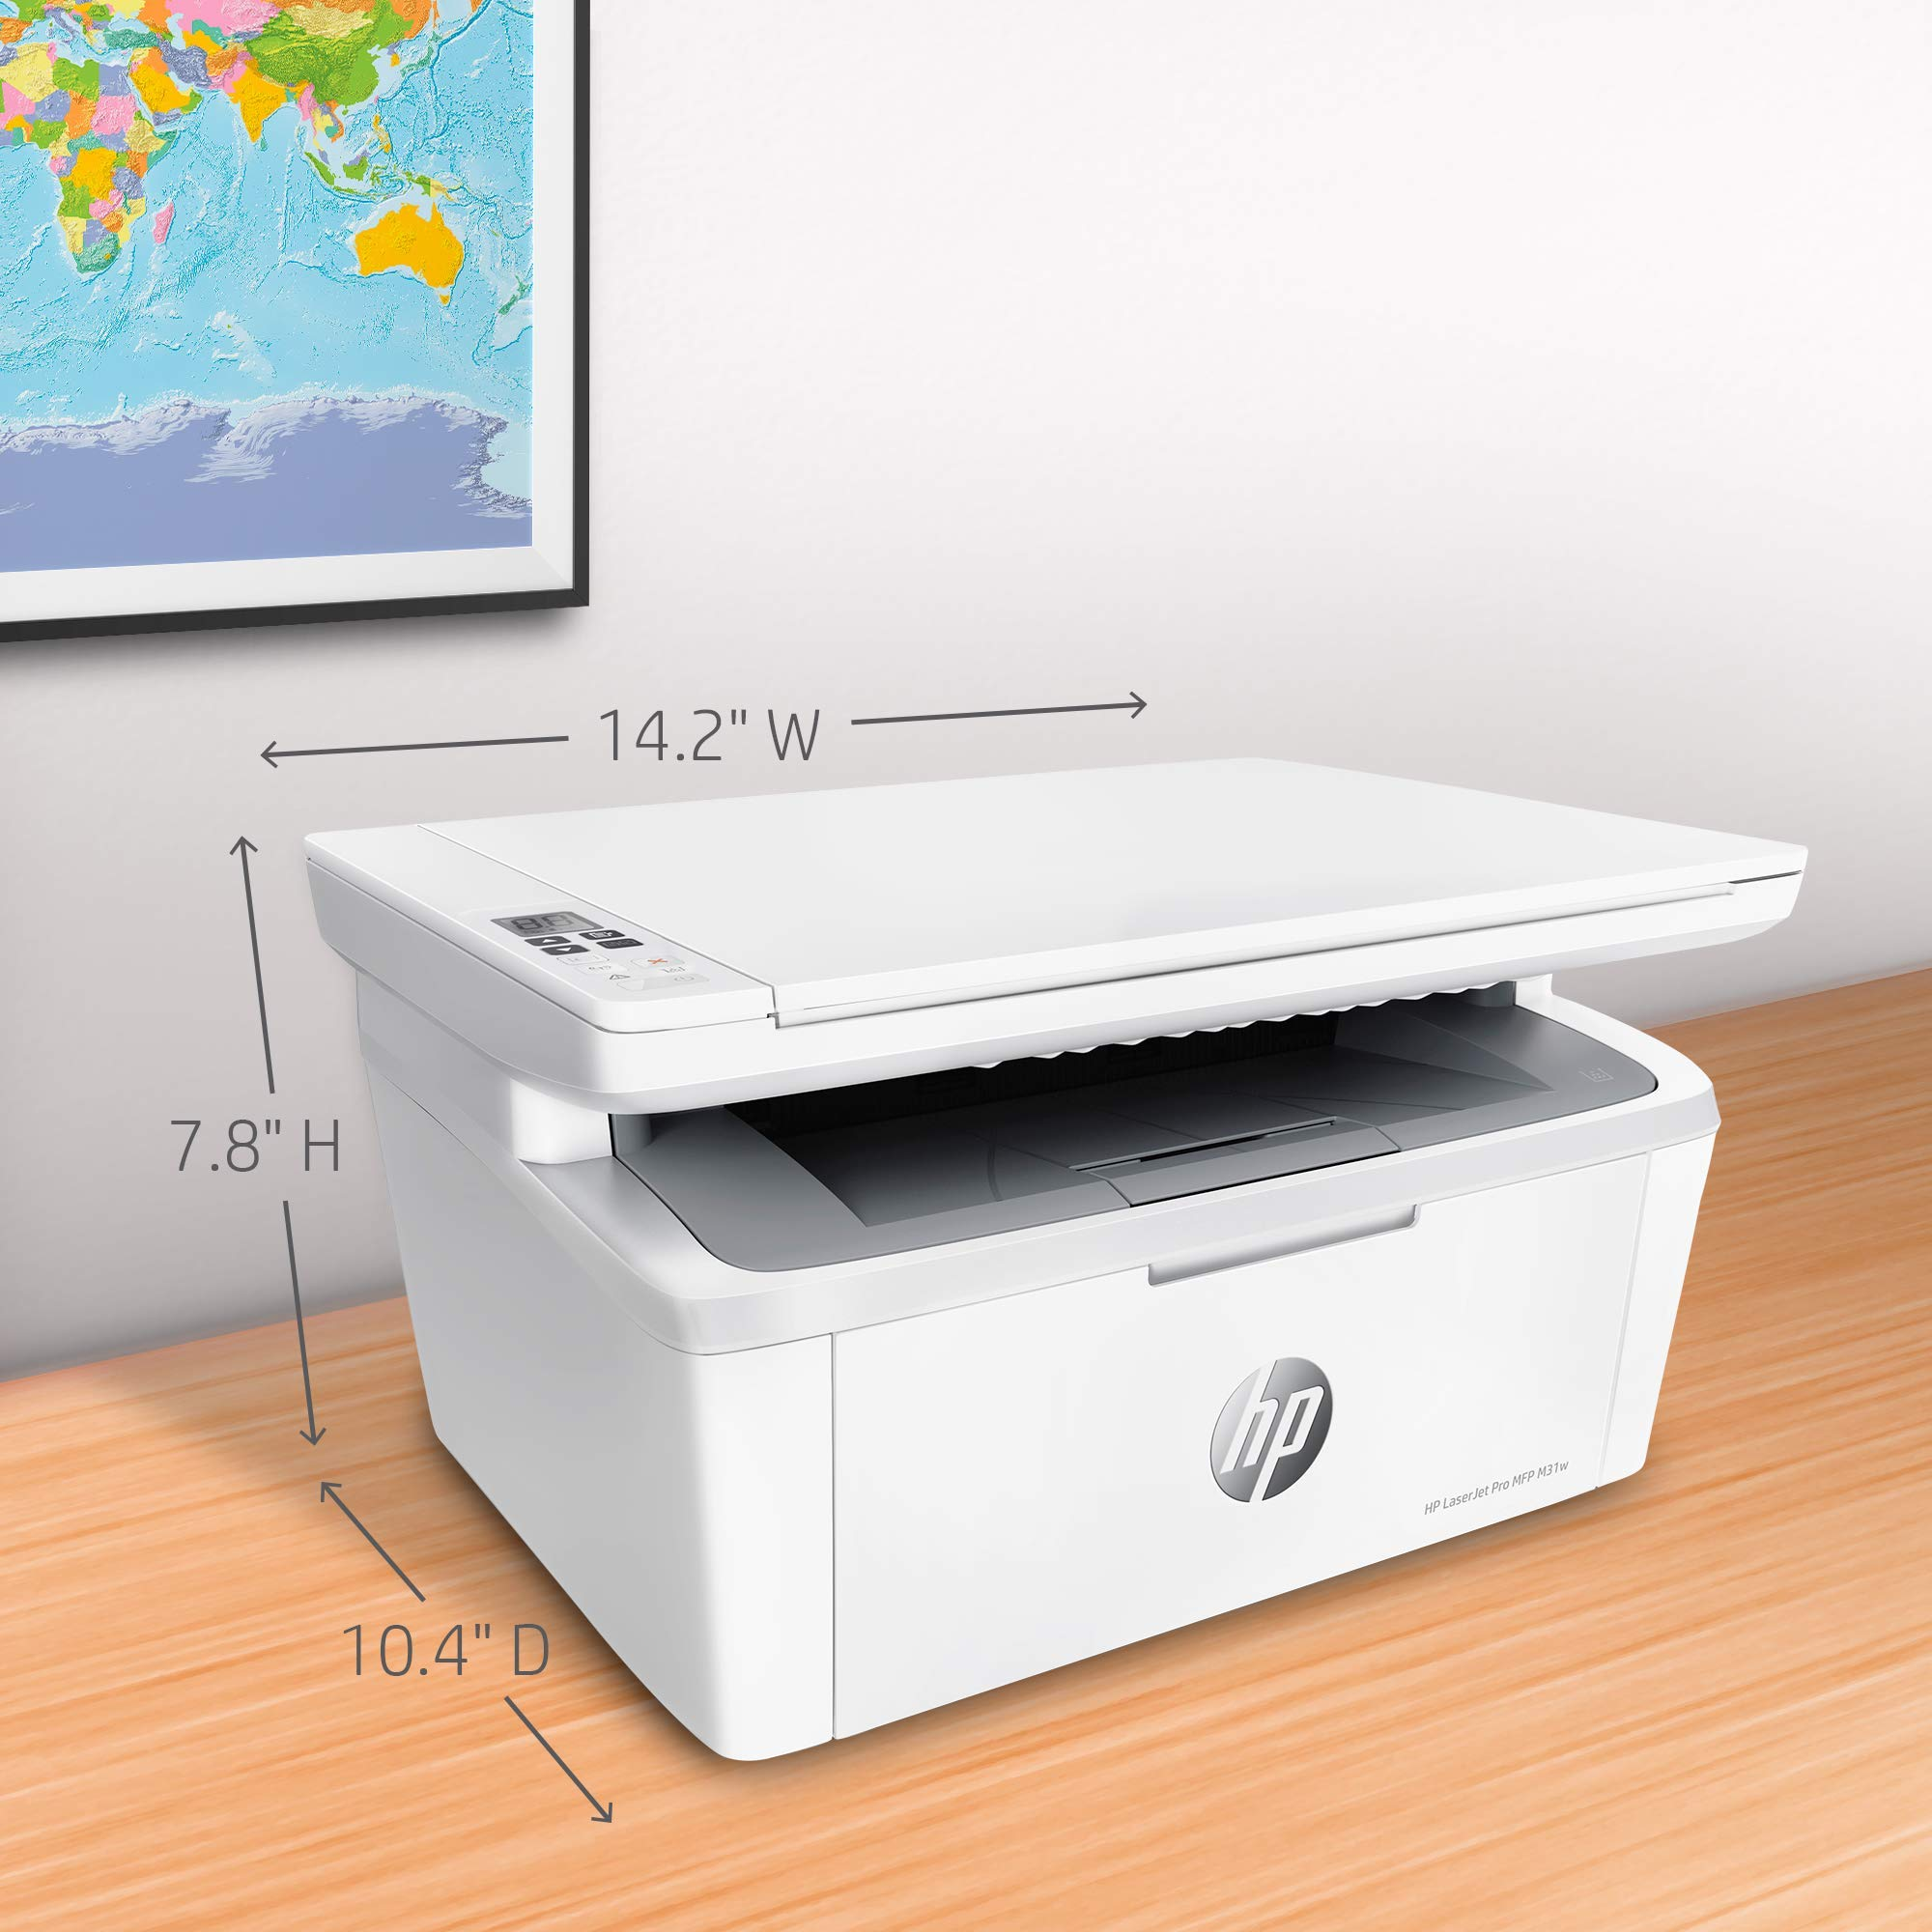 HP Laserjet Pro M31w All-in-One Wireless Monochrome Laser Printer with Mobile Printing (Y5S55A) (Renewed) by HP (Image #4)